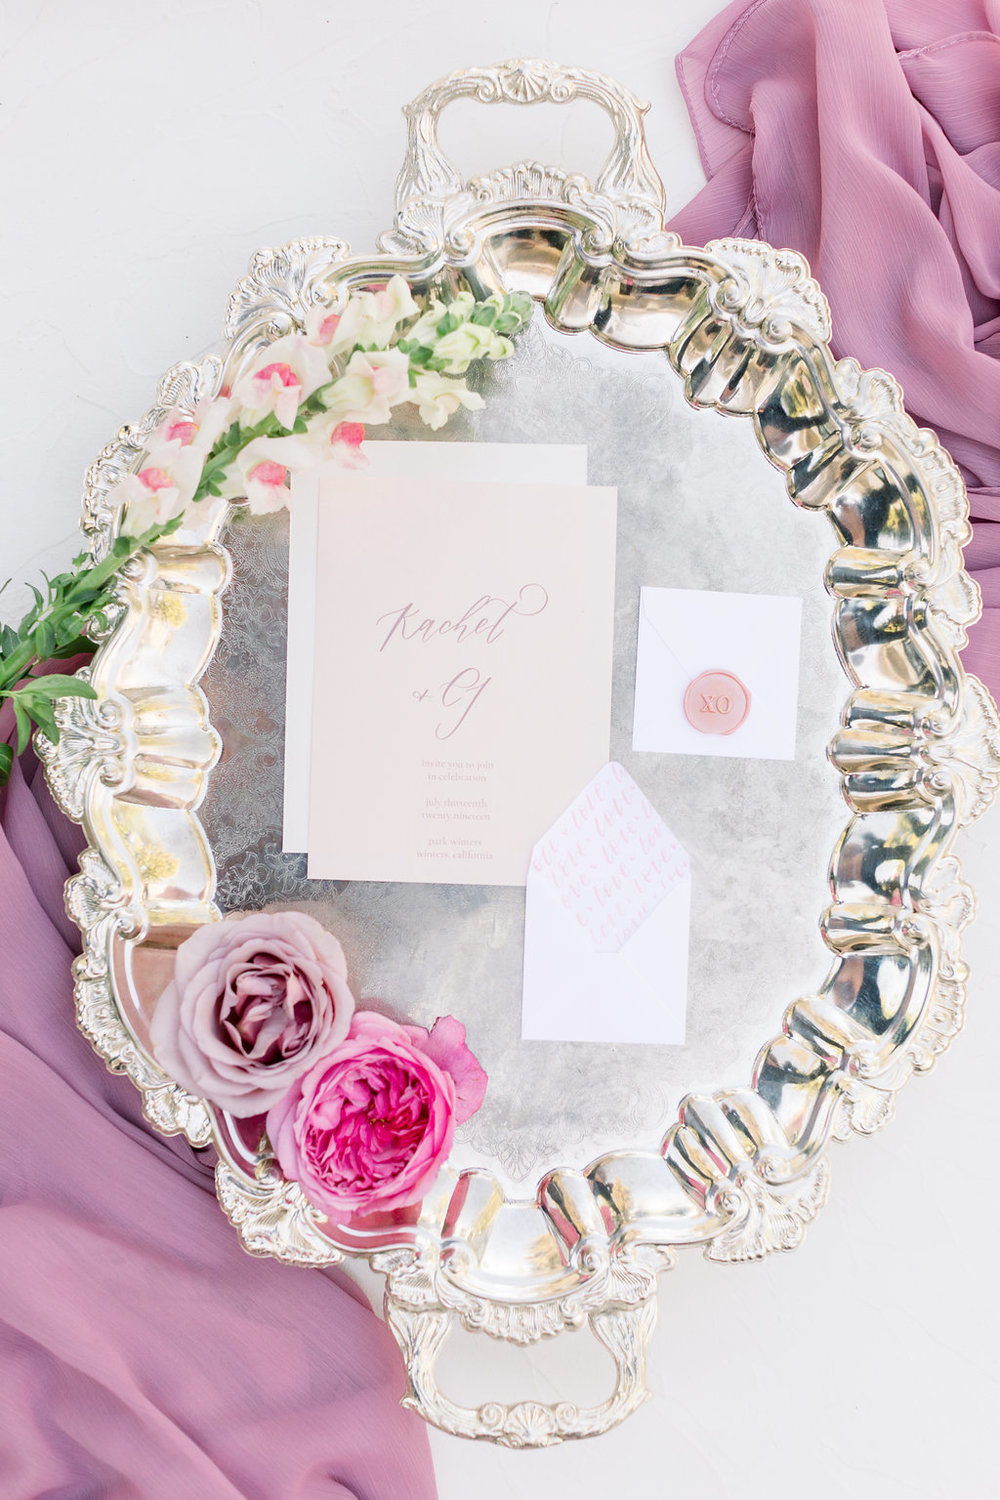 Linens for wedding Invitation Flatlay Photography Idea